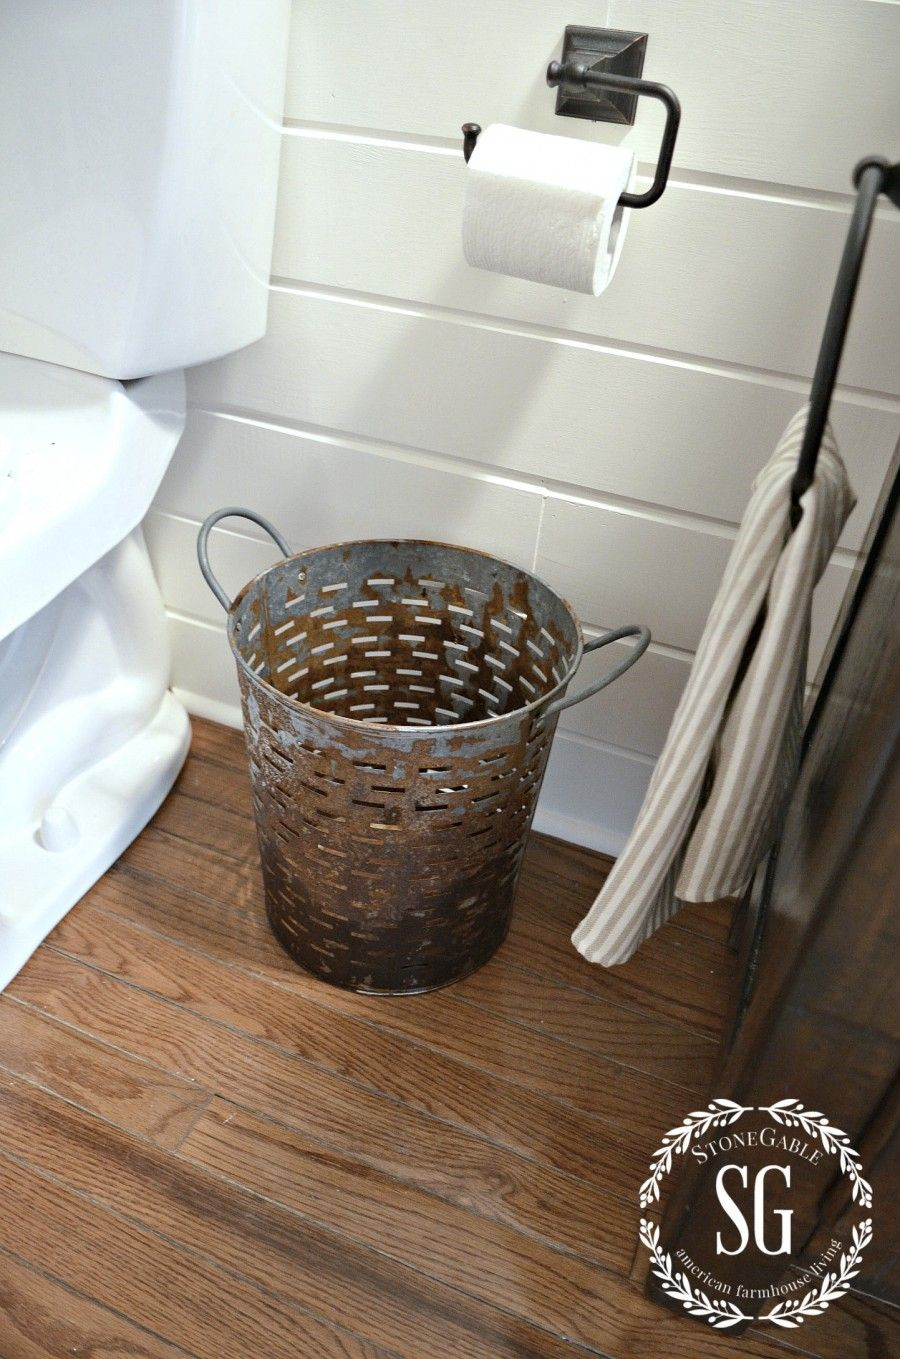 cans can garbage bathroom target liners plastic allmodern wastebaskets for of umbra decorative trash bedroom filur wastebasket gold large metalla size gallon modern ikea inspired